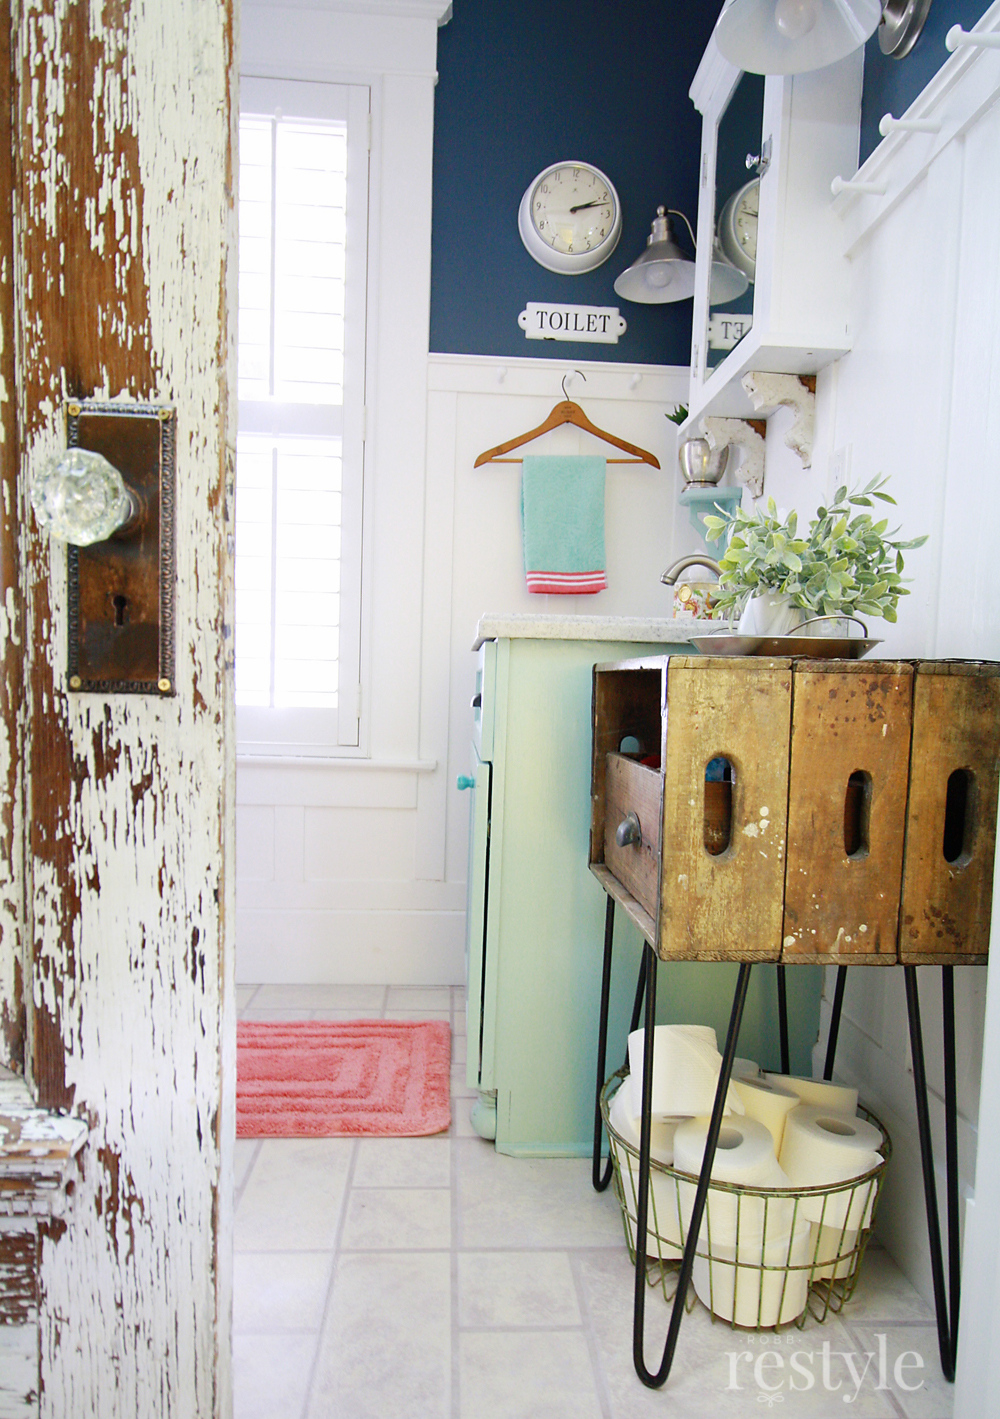 Small Bathroom Updates with Vintage Decor